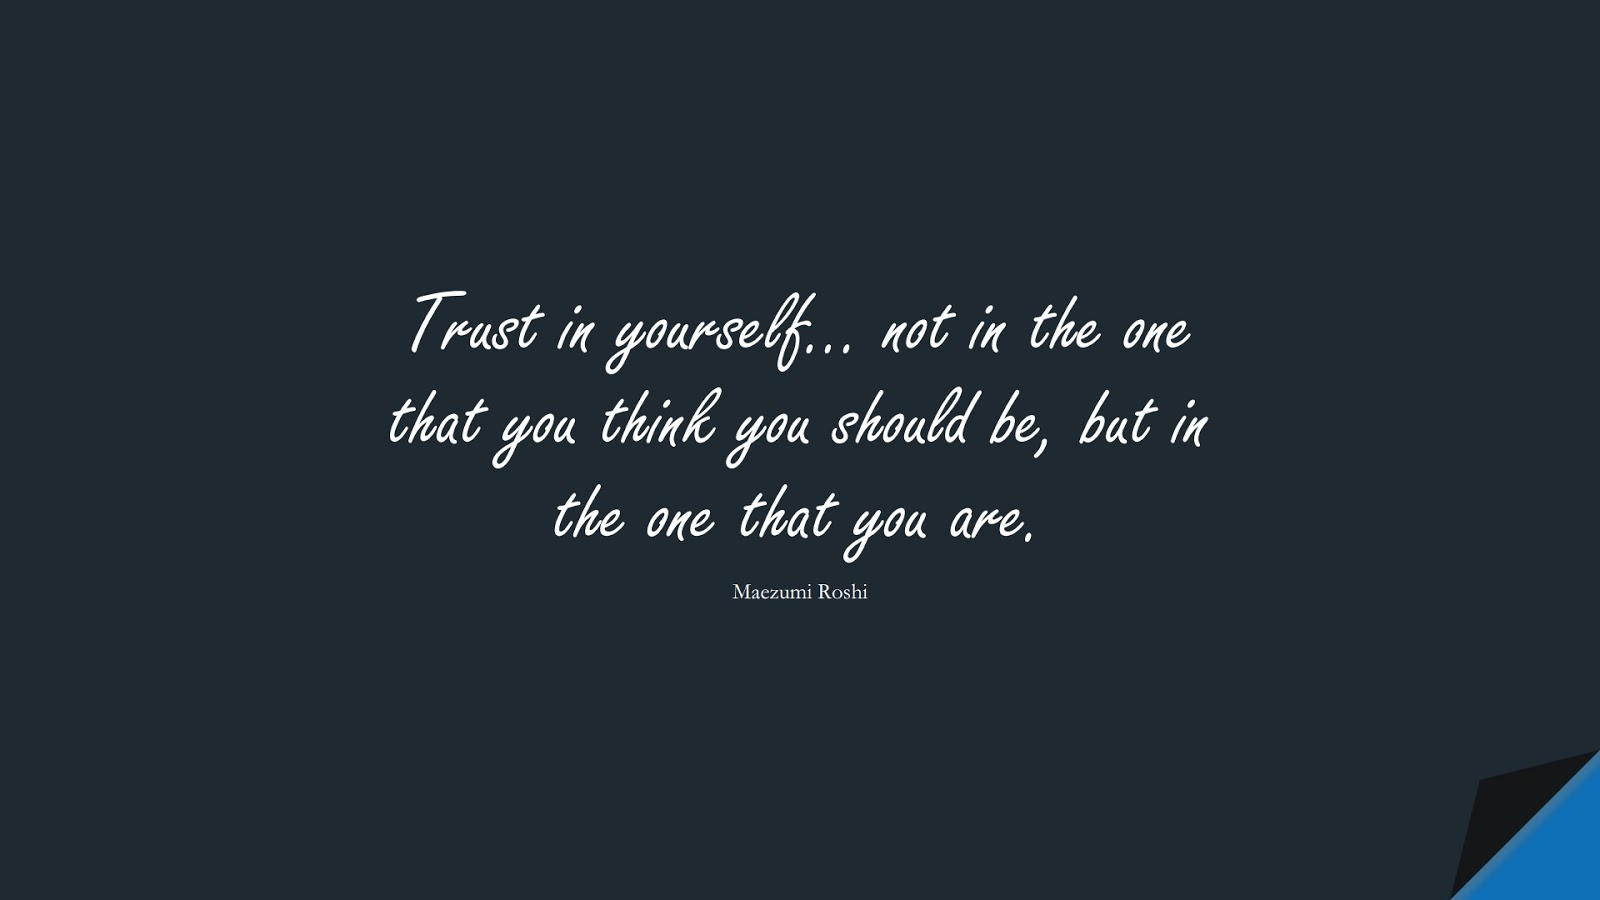 Trust in yourself… not in the one that you think you should be, but in the one that you are. (Maezumi Roshi);  #LoveYourselfQuotes